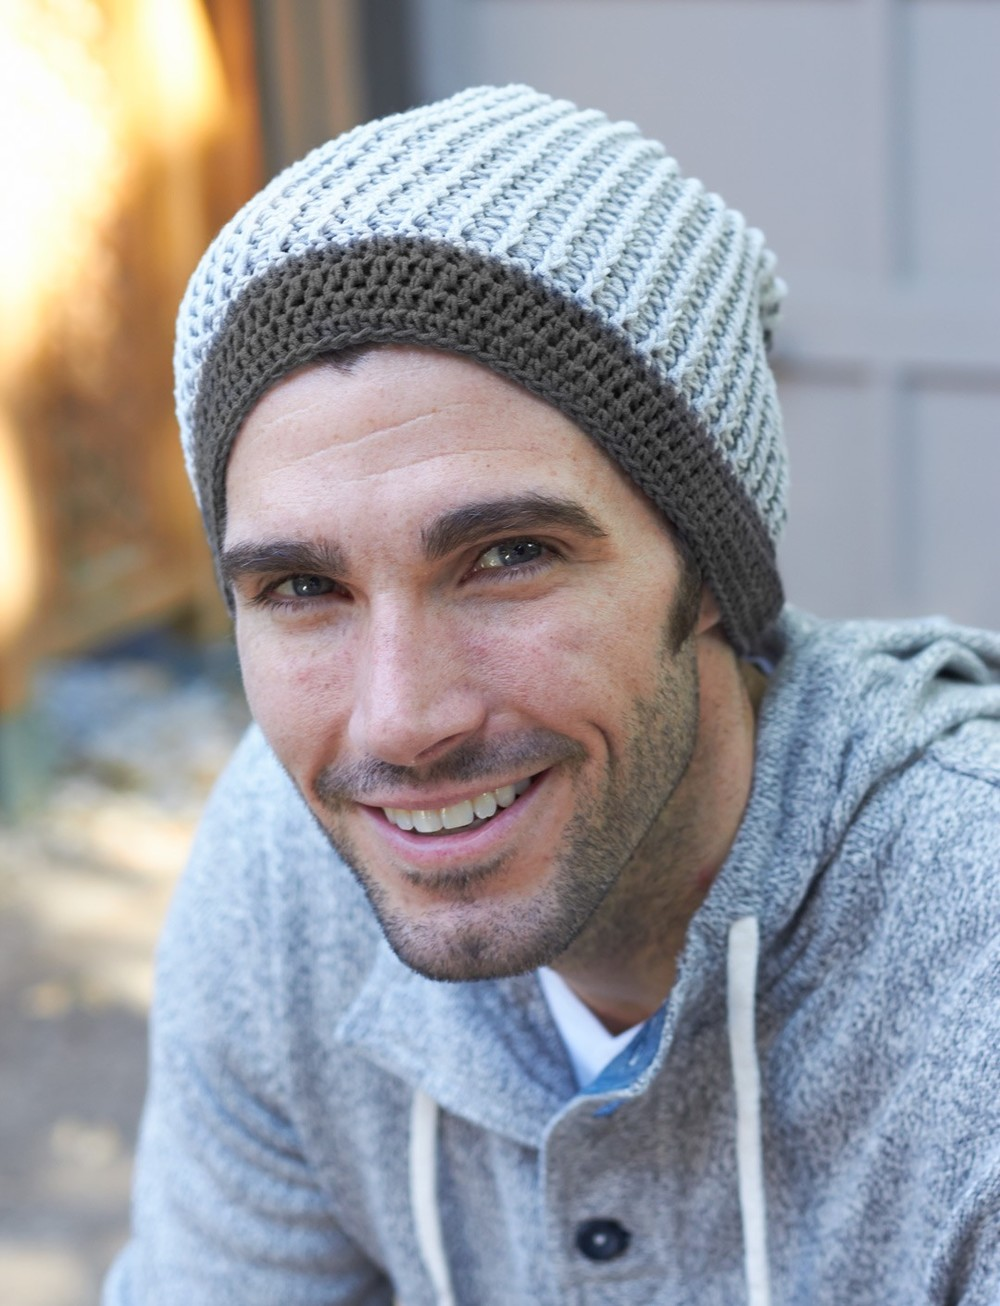 Mens Slouchy Beanie Knitting Pattern : Stay Stylish Crochet Beanie AllFreeCrochet.com